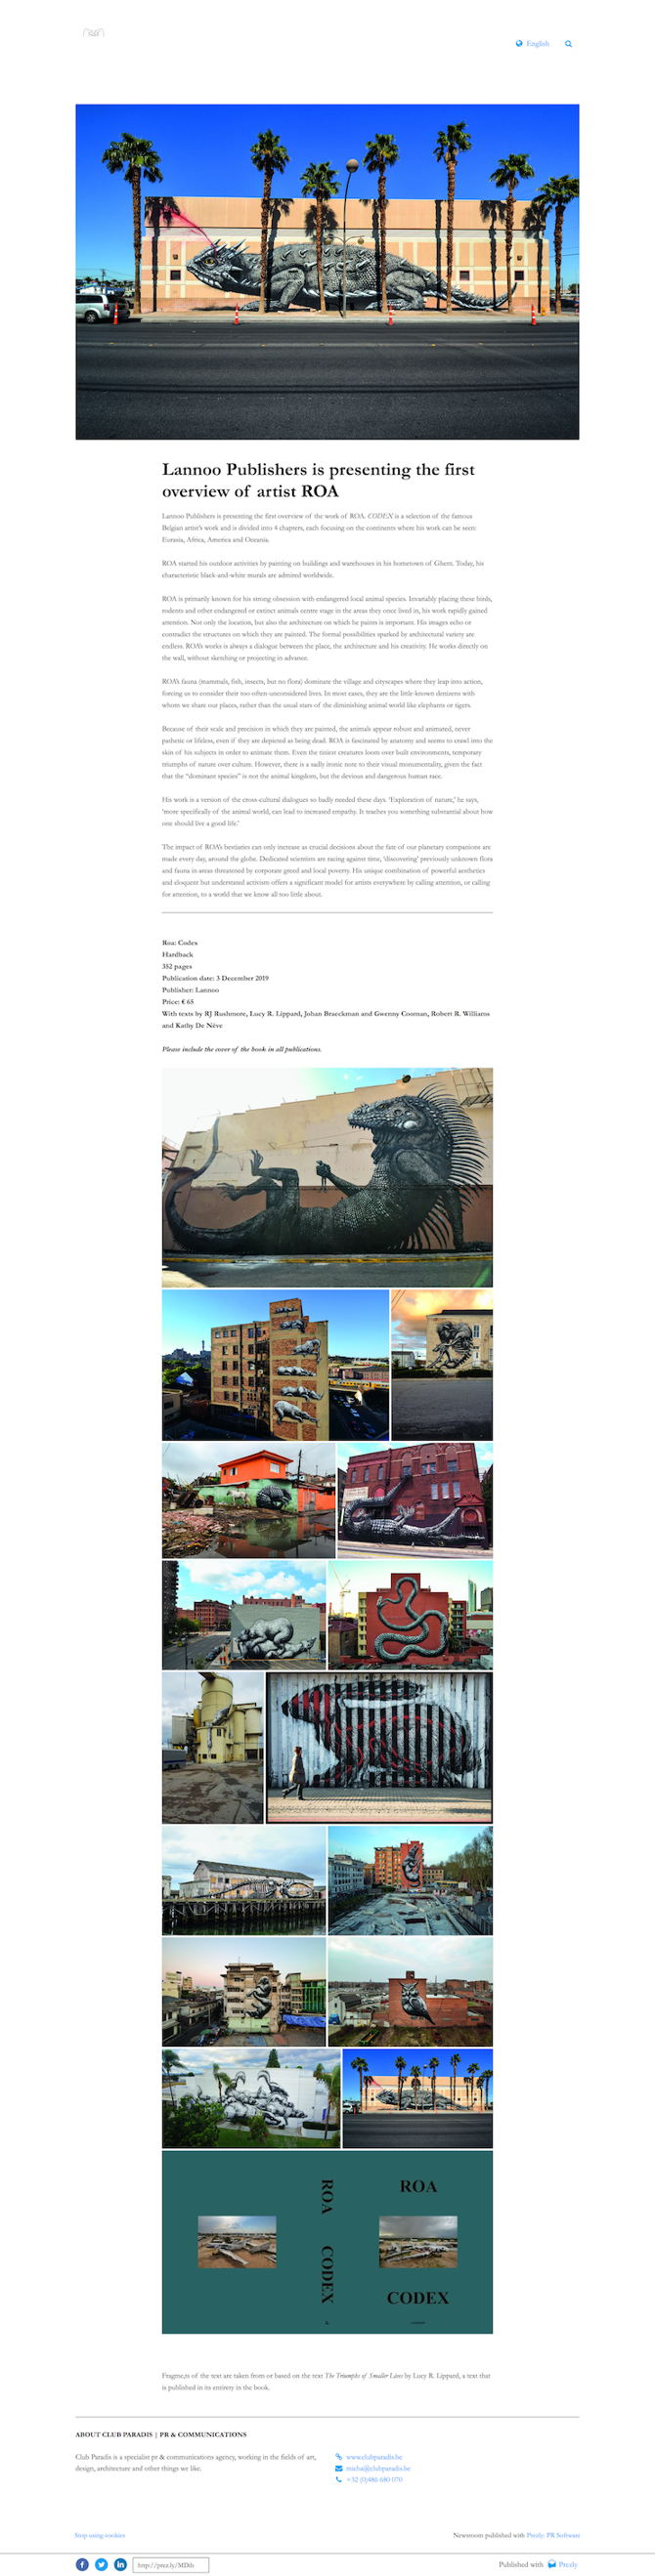 Lannoo Publishers is presenting the first overview of artist ROA